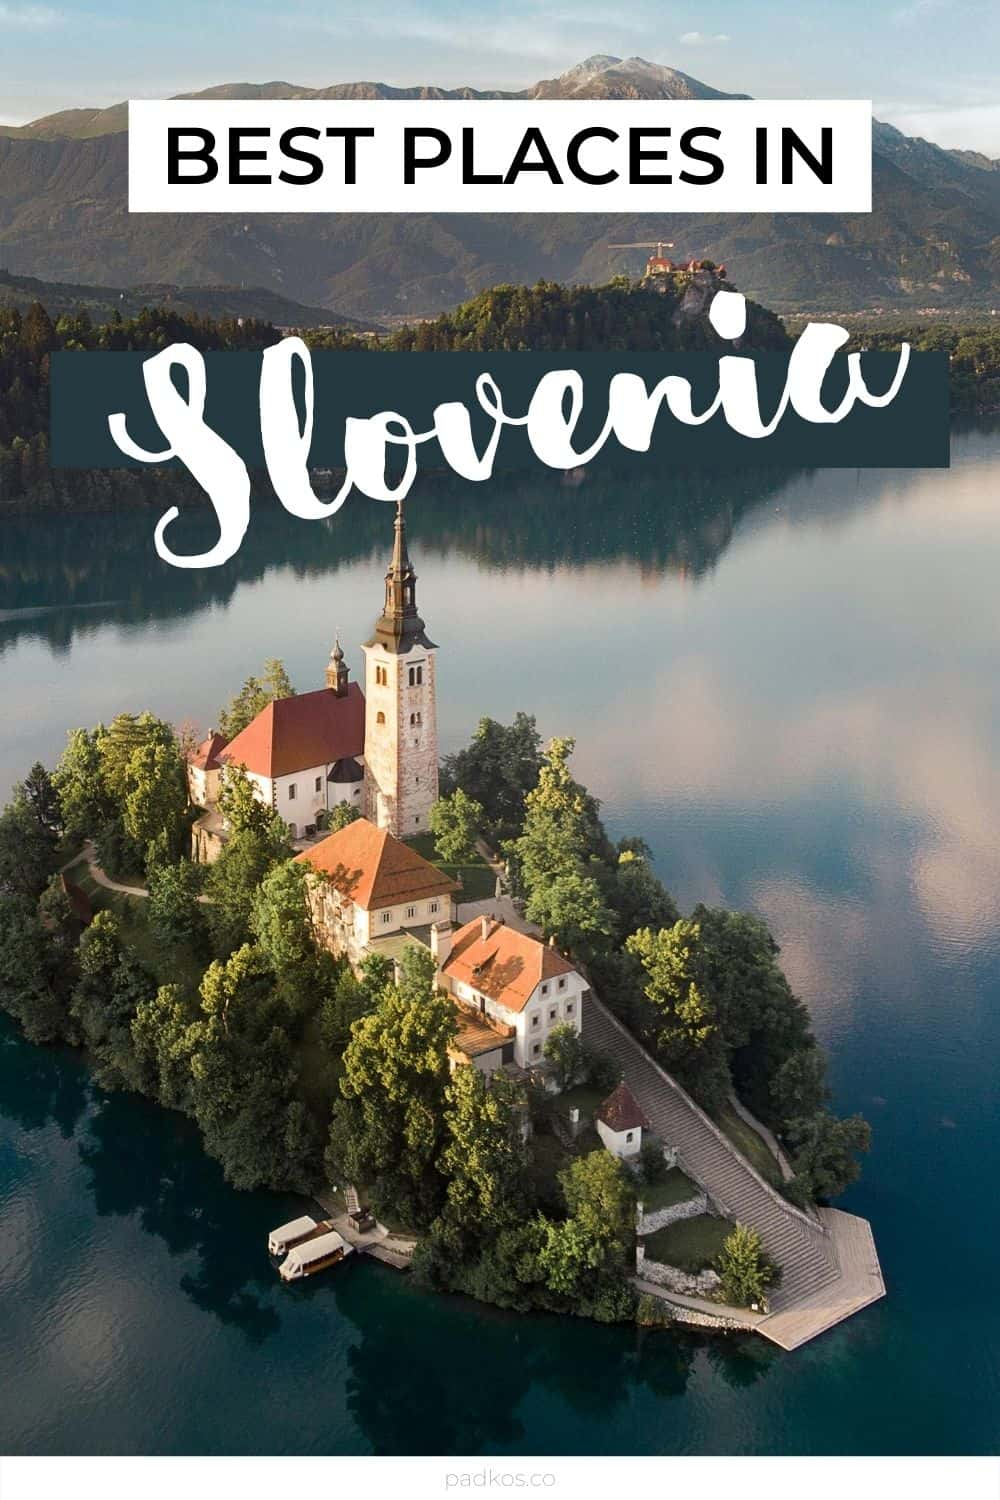 The best places to visit in Slovenia - Lake Bled